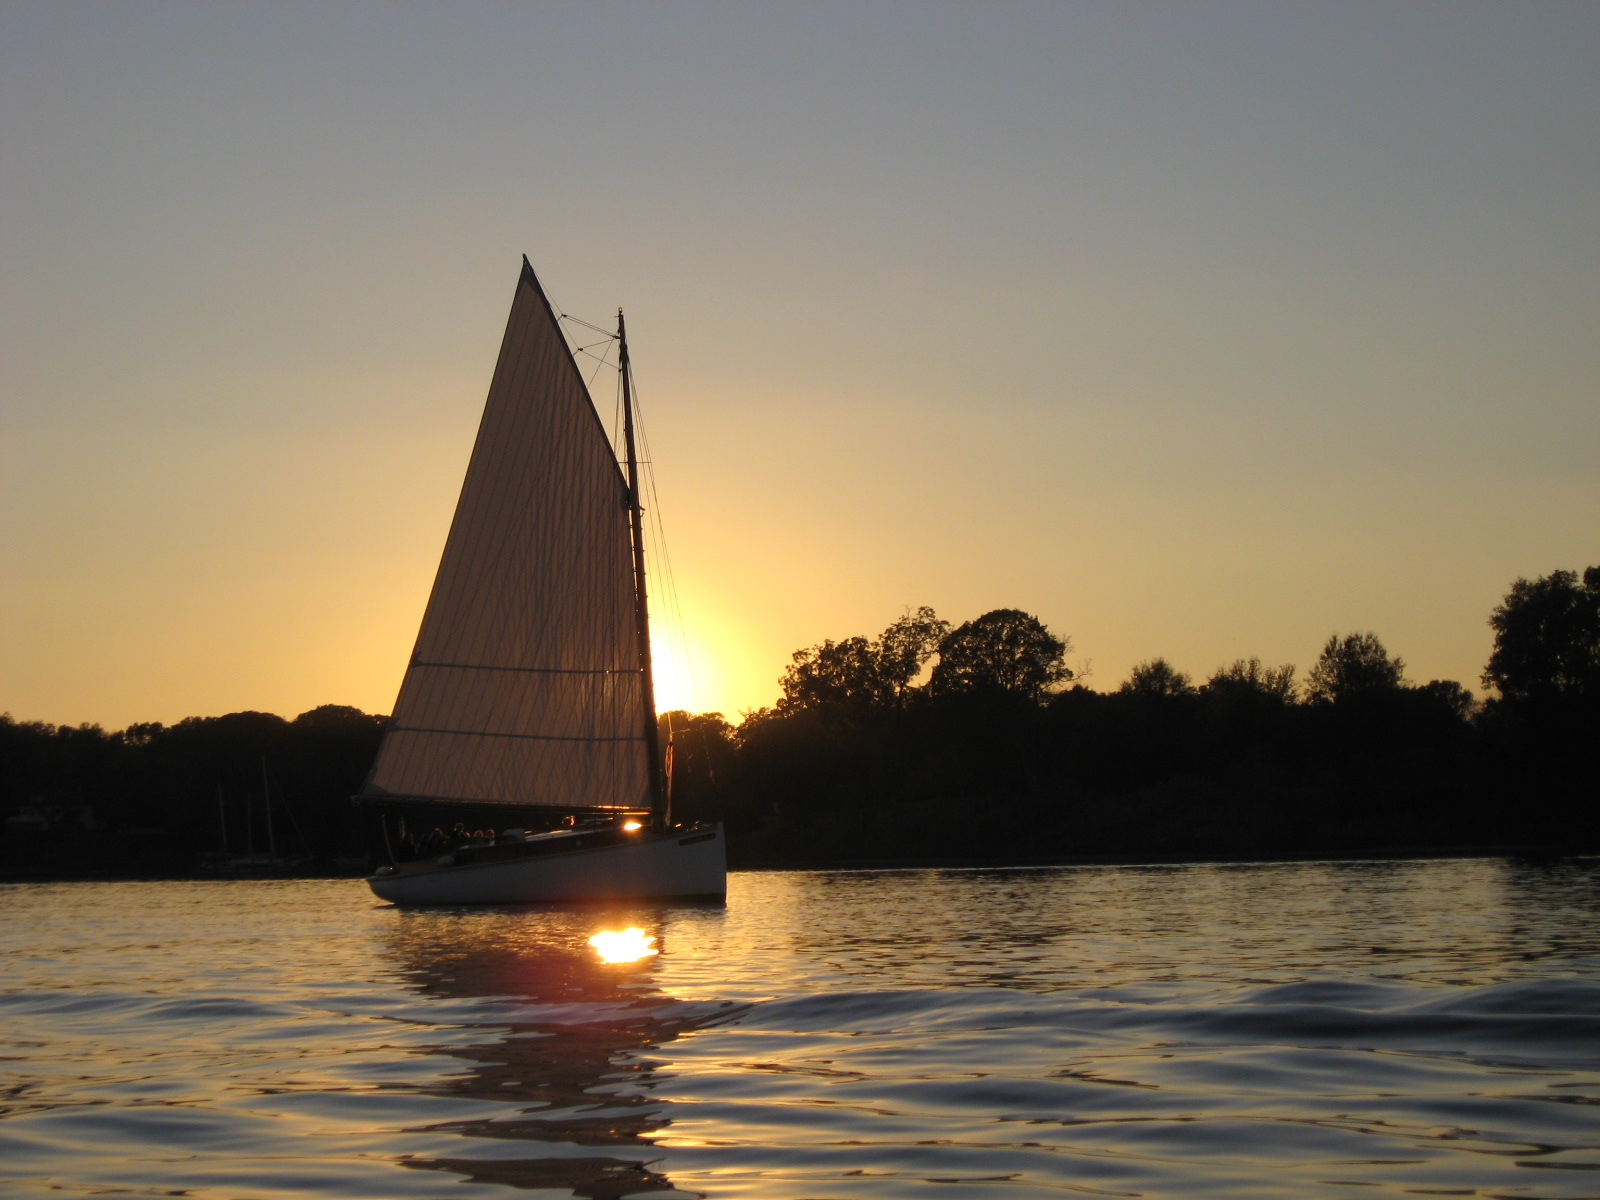 sunset cruise, sail selina, st michaels md, champagne cold beer wine.JPG